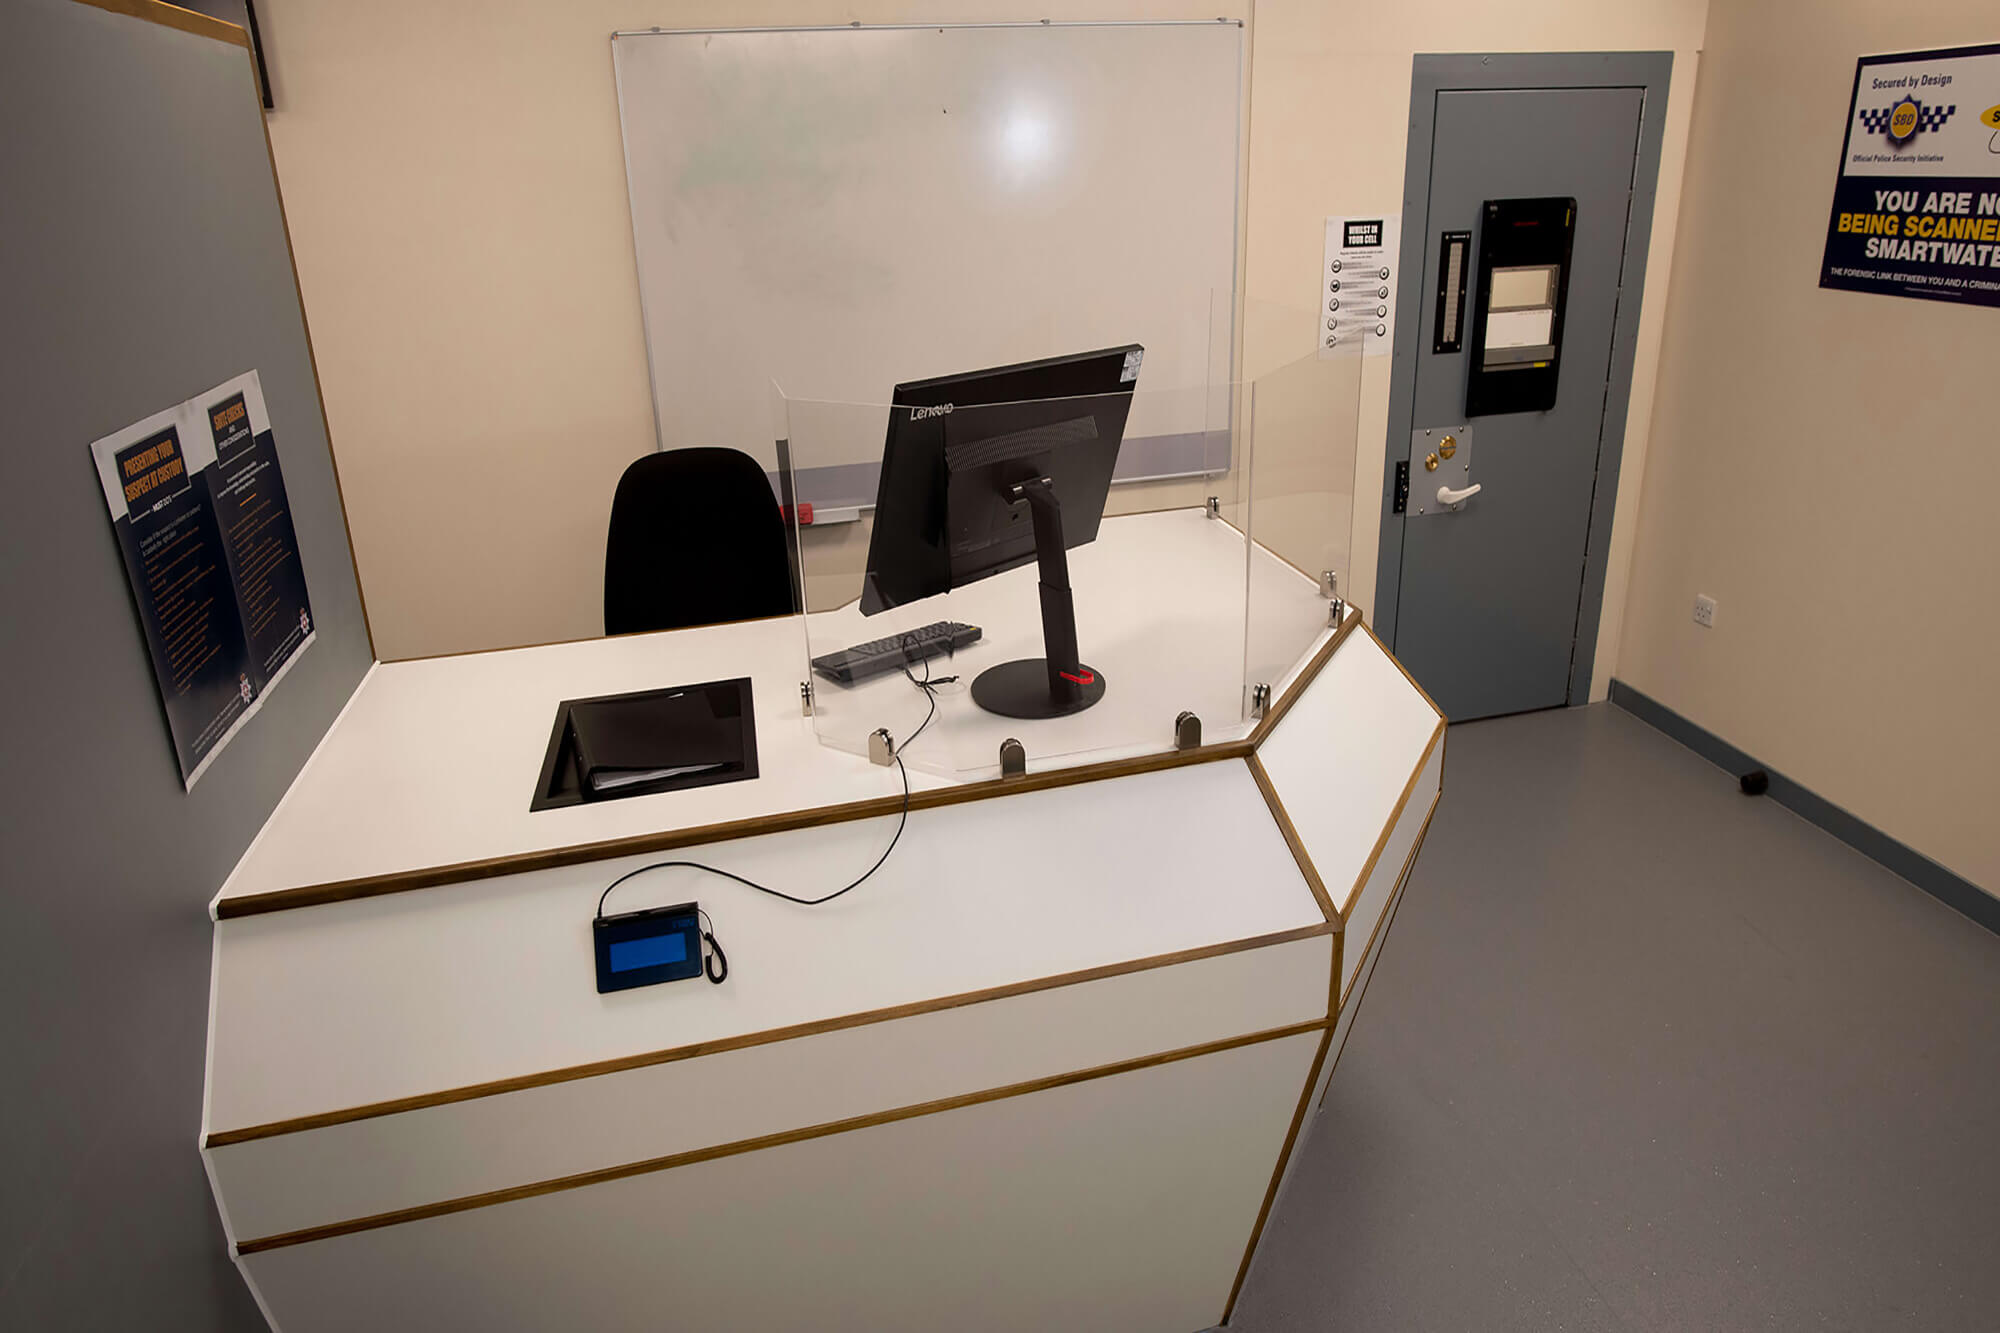 The booking-in desk in our replica custody suite